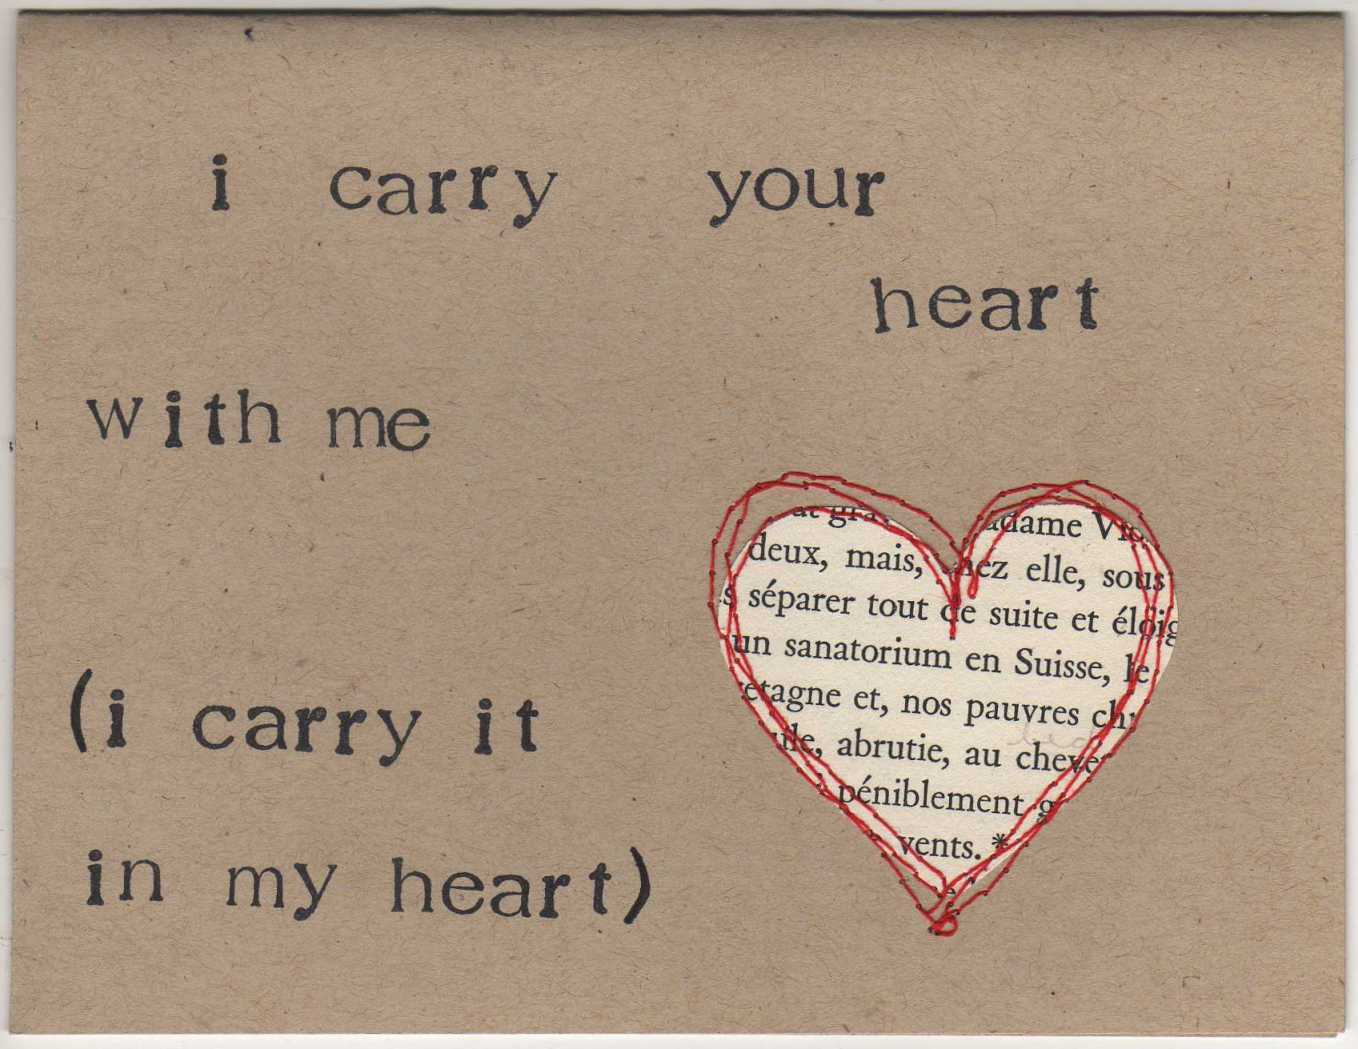 poem explication i carry your heart Poem explication the  he feels it is a small privilege to know that he does not have to carry every  6 these ill supposed glories made his heart feud with.